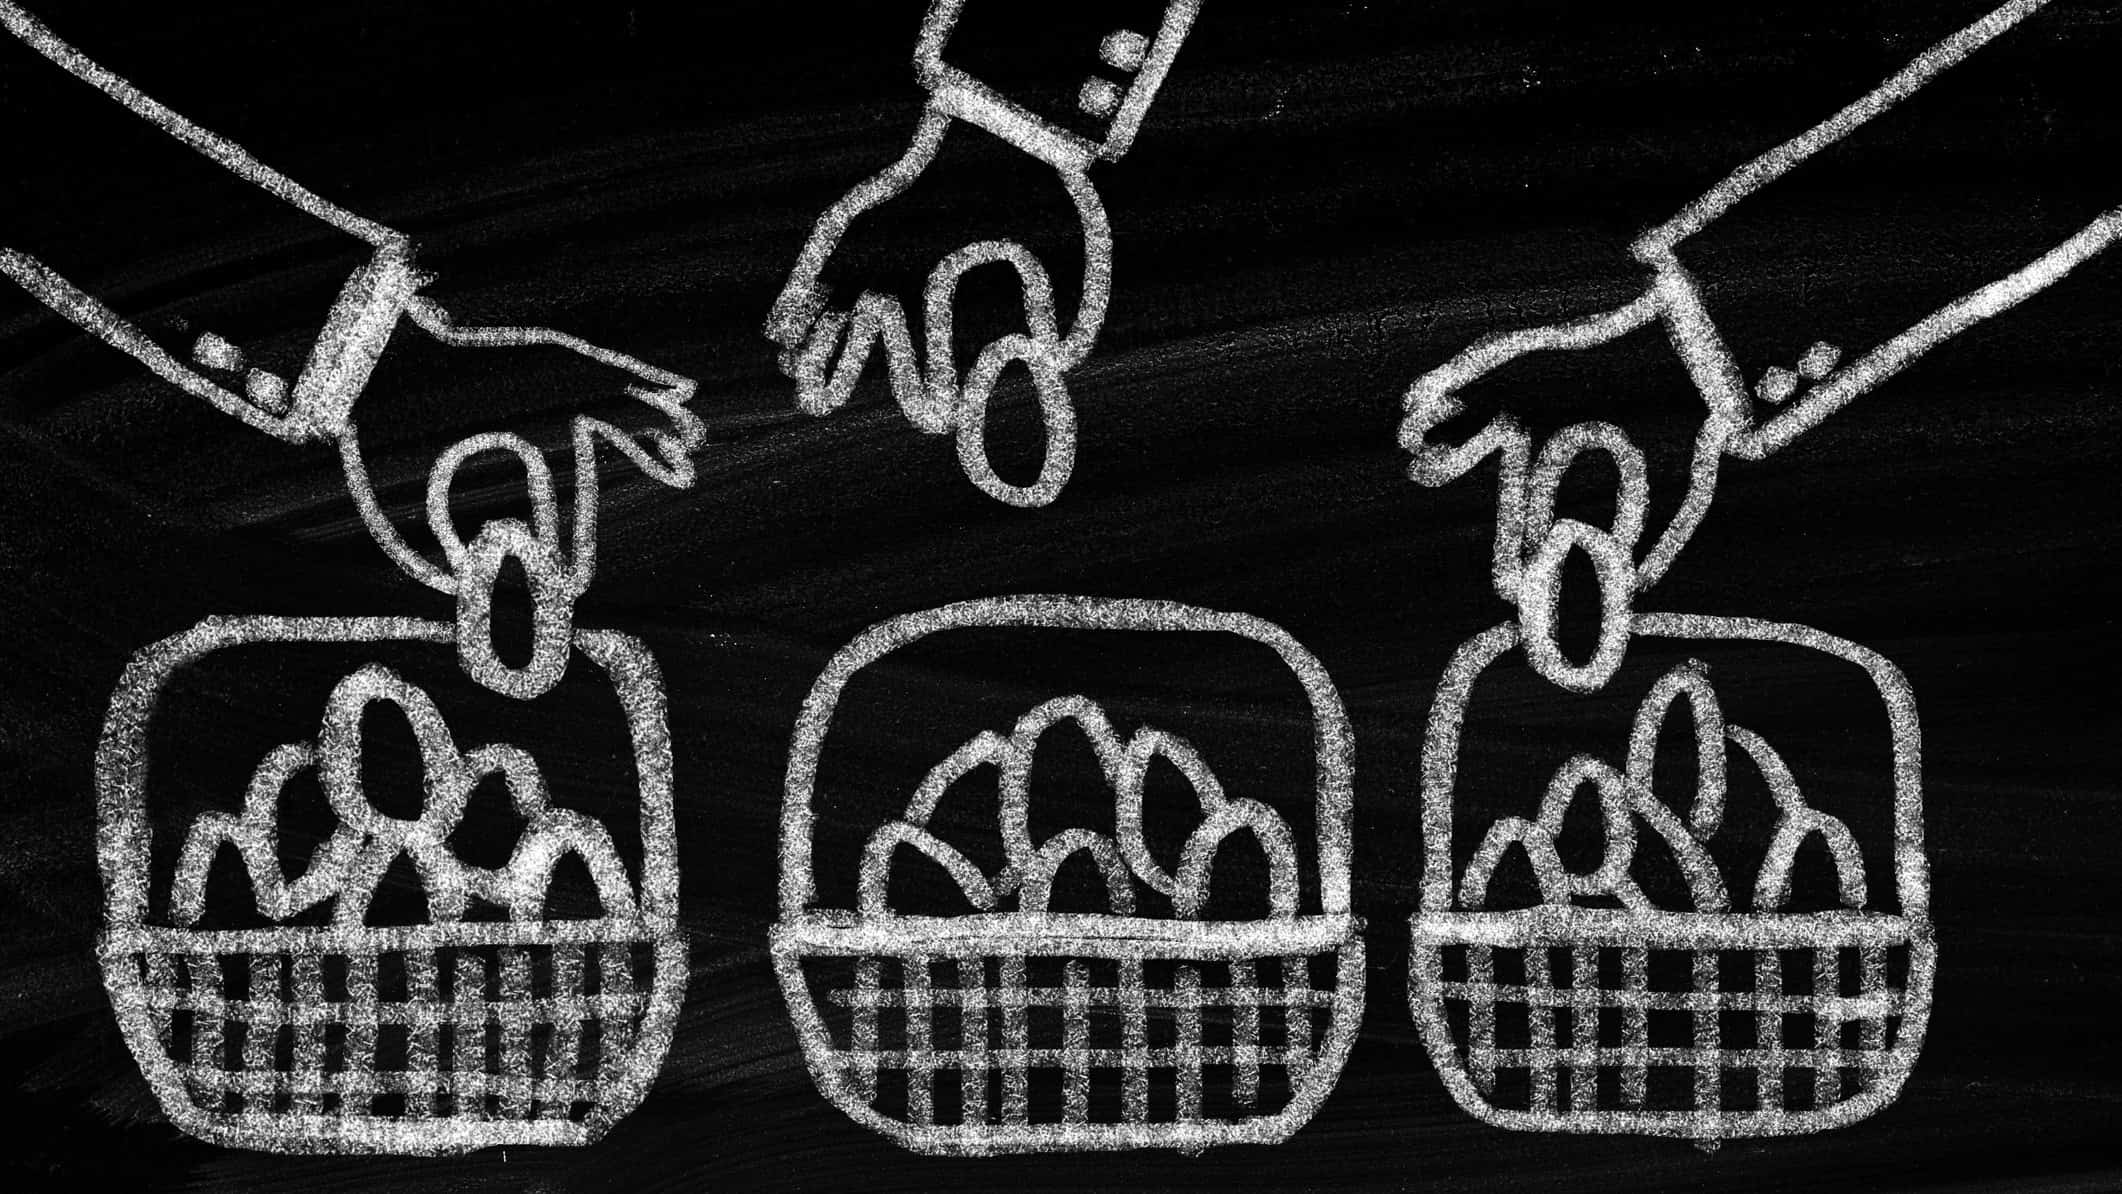 diversification through asx etf represented by chalk drawing of hands placing eggs in multiple baskets